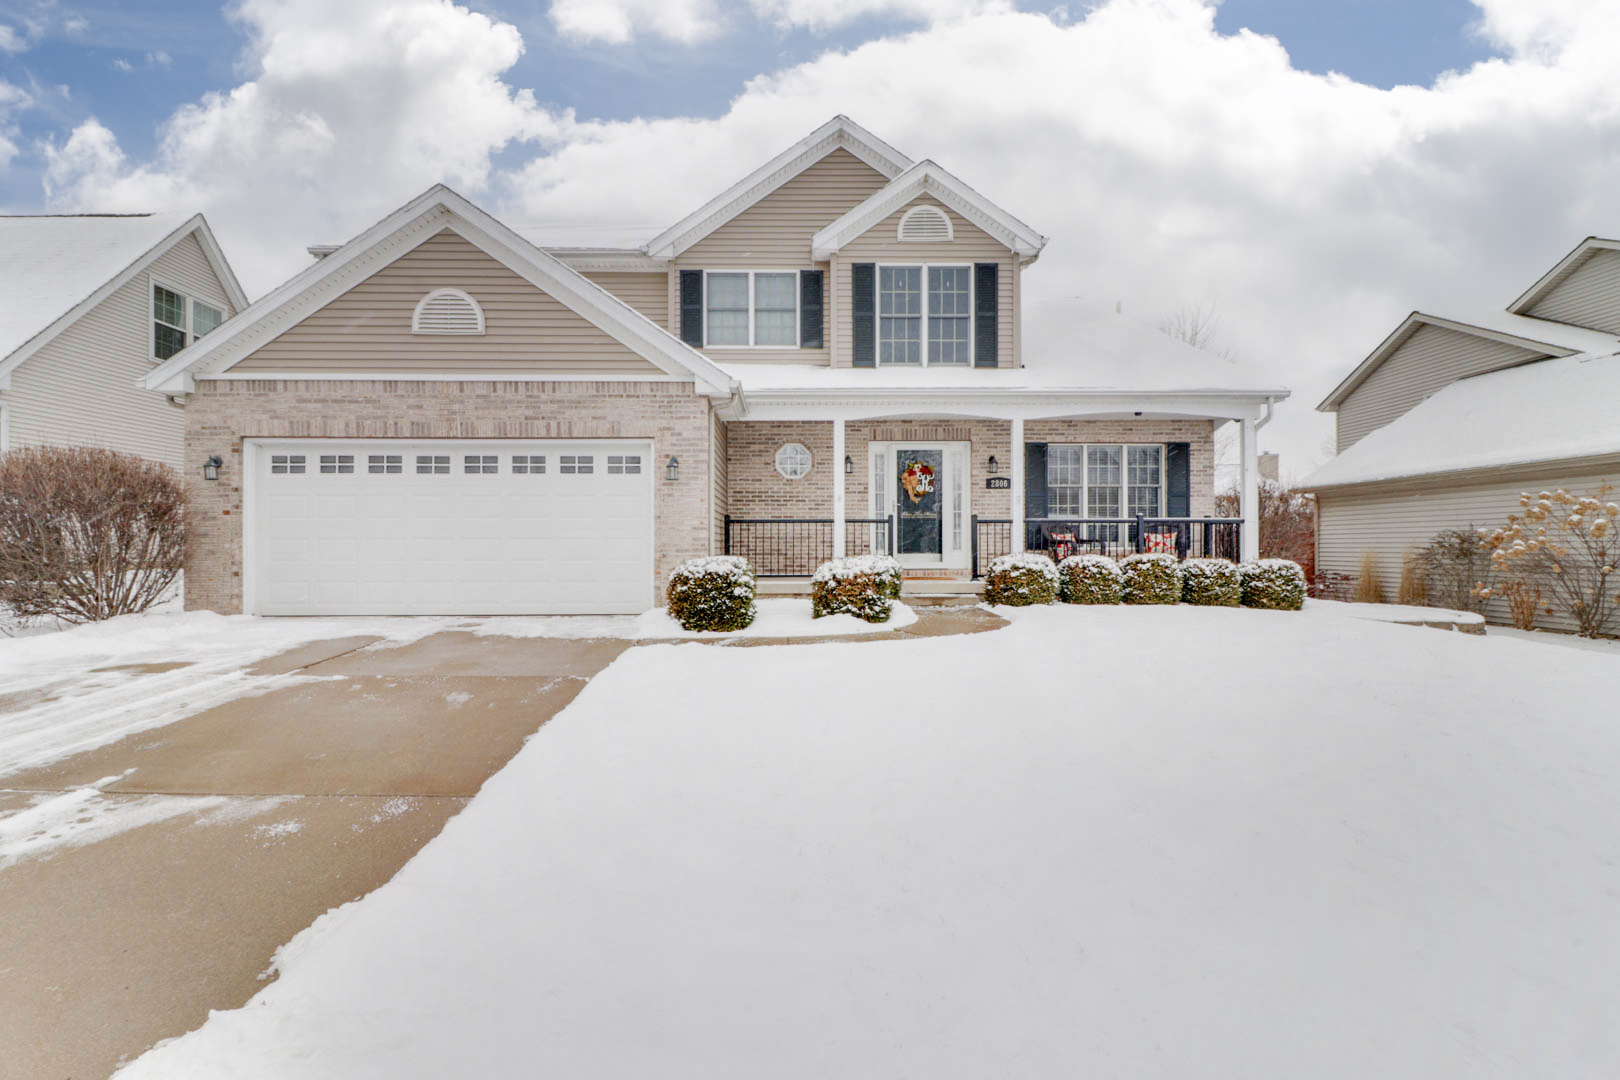 2806 Longmeadow Lane, Bloomington, IL 61704 – UNDER CONTRACT